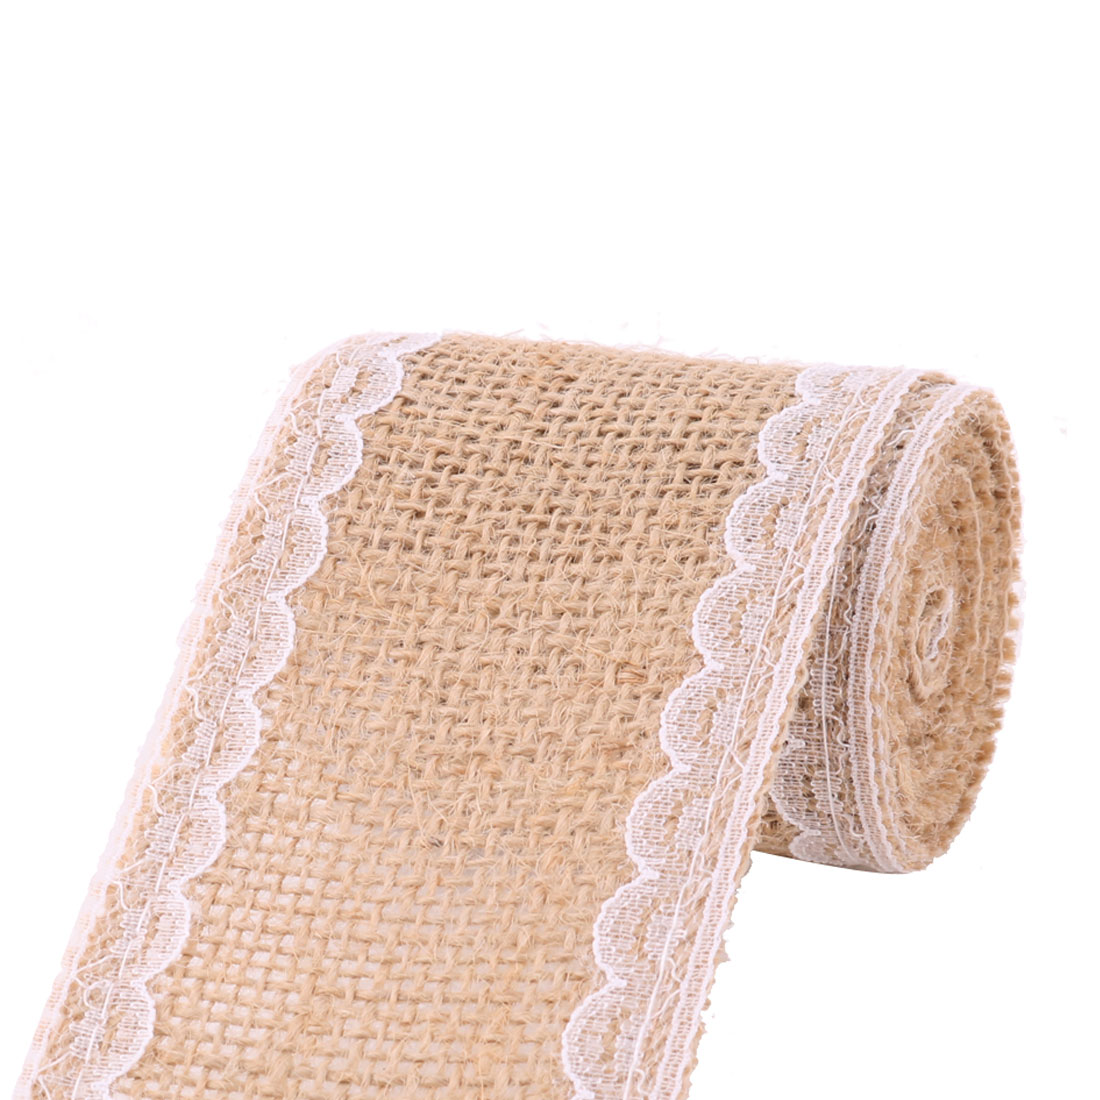 Unique Bargains Christmas Burlap DIY Sewing Belt Craft Gift Wrapping Ribbon Roll White 2.2 Yards